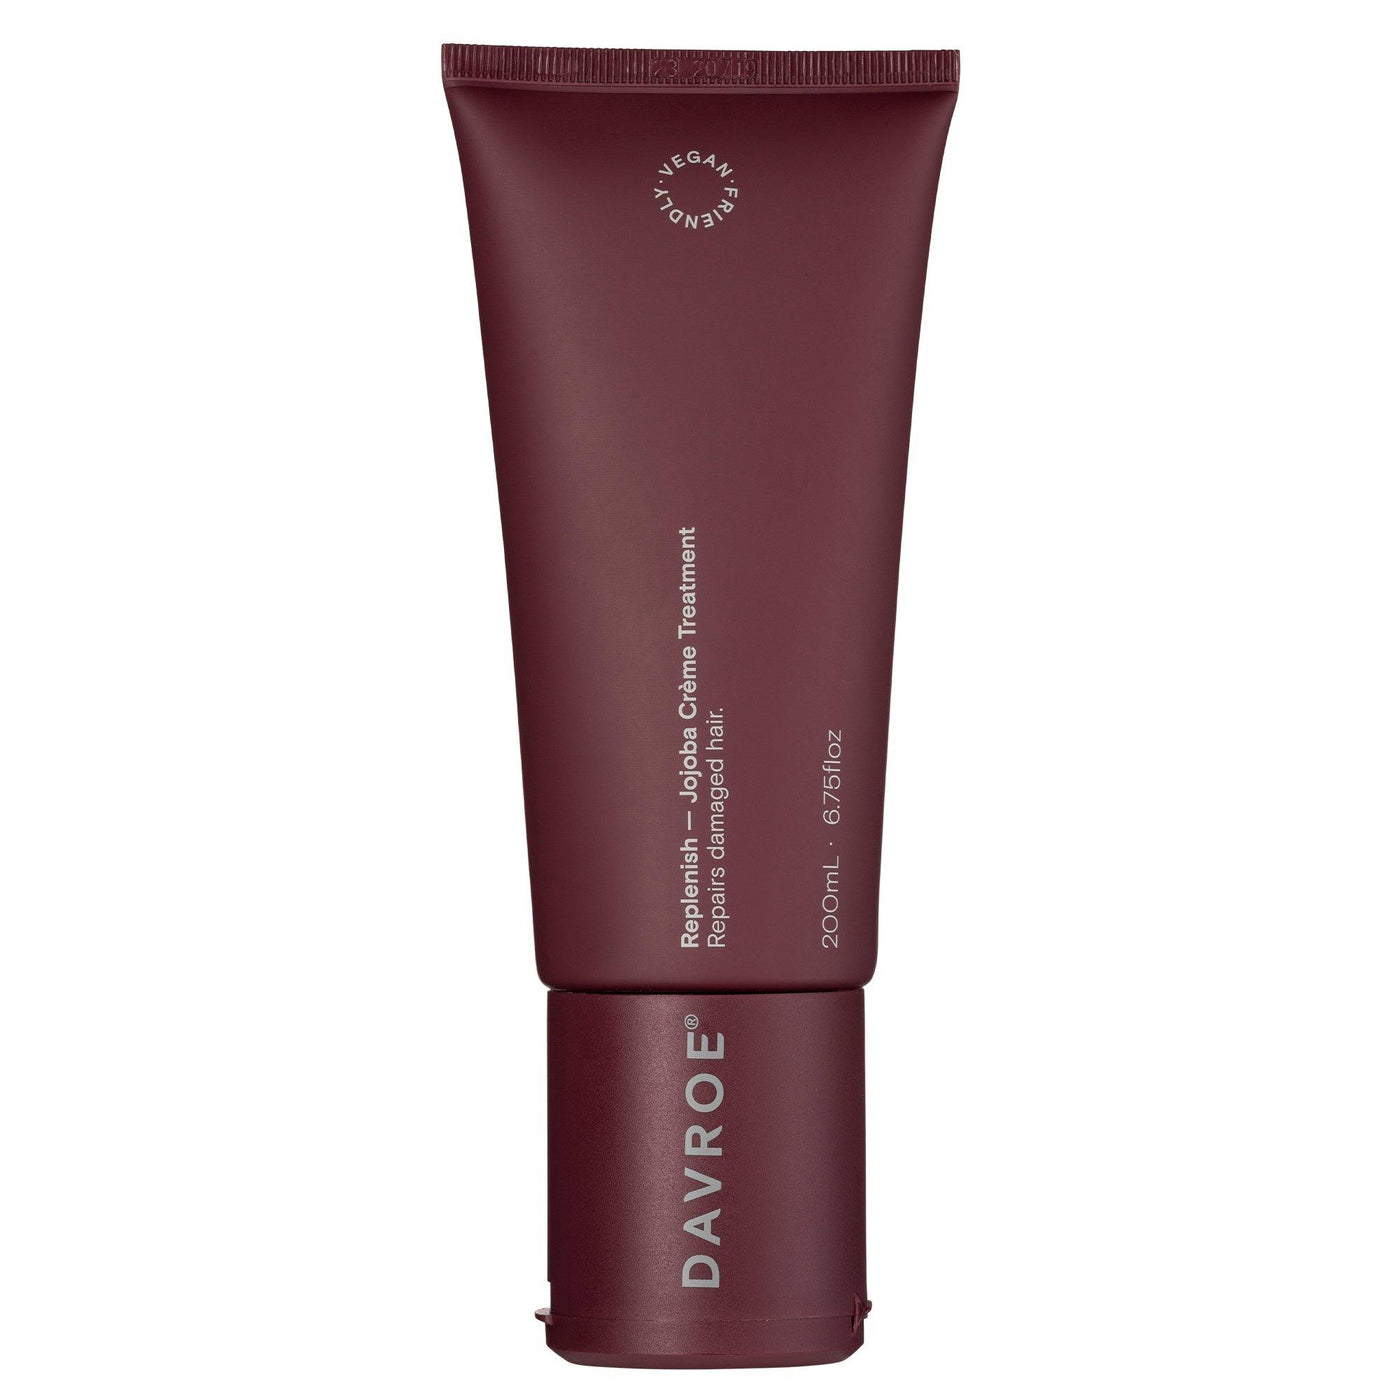 Davroe Replenish Jojoba Crème Treatment